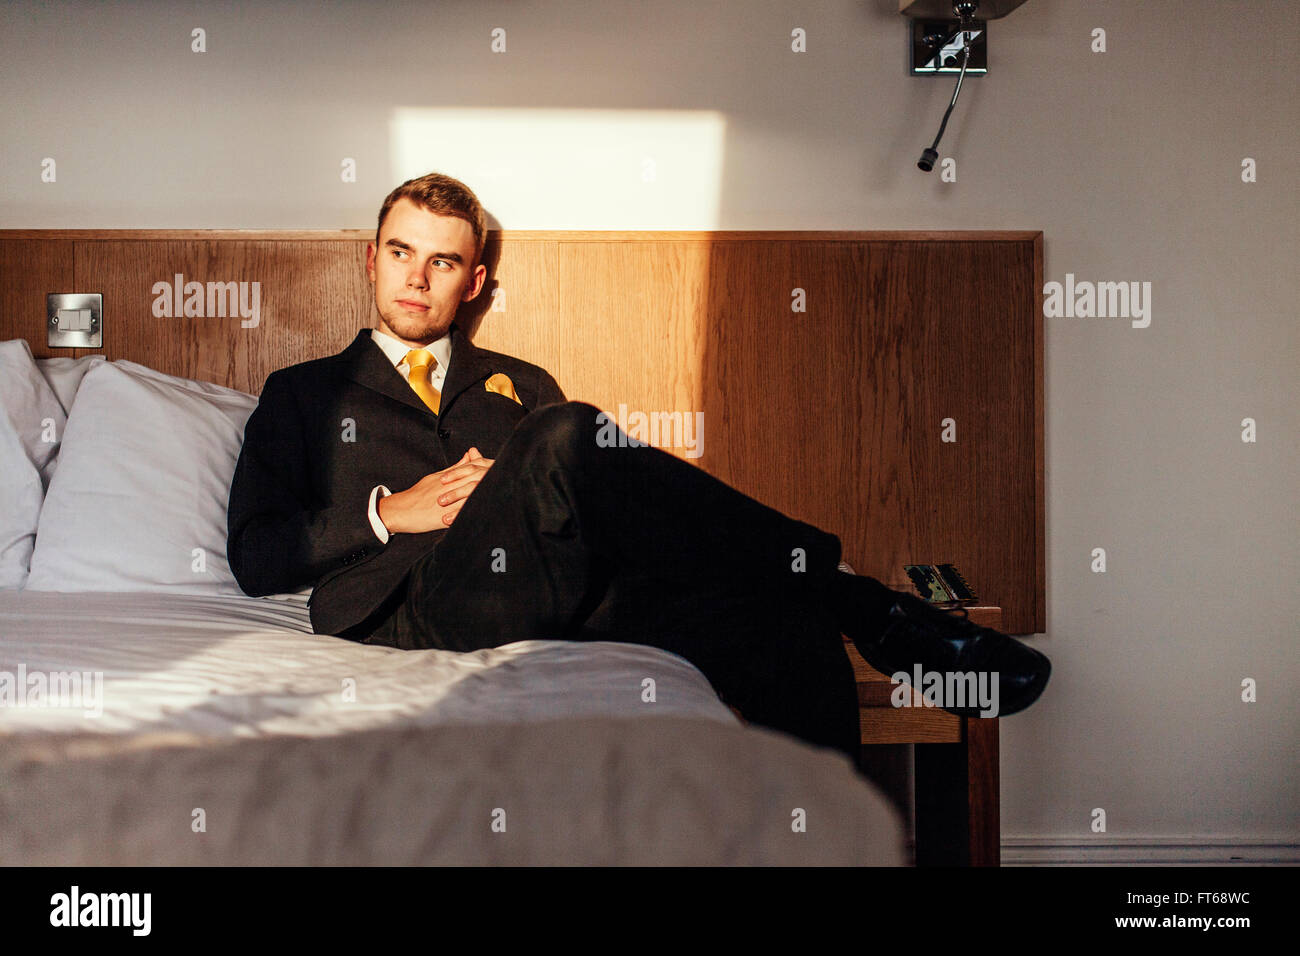 Thoughtful well-dressed businessmanman sitting on bed in hotel room - Stock Image